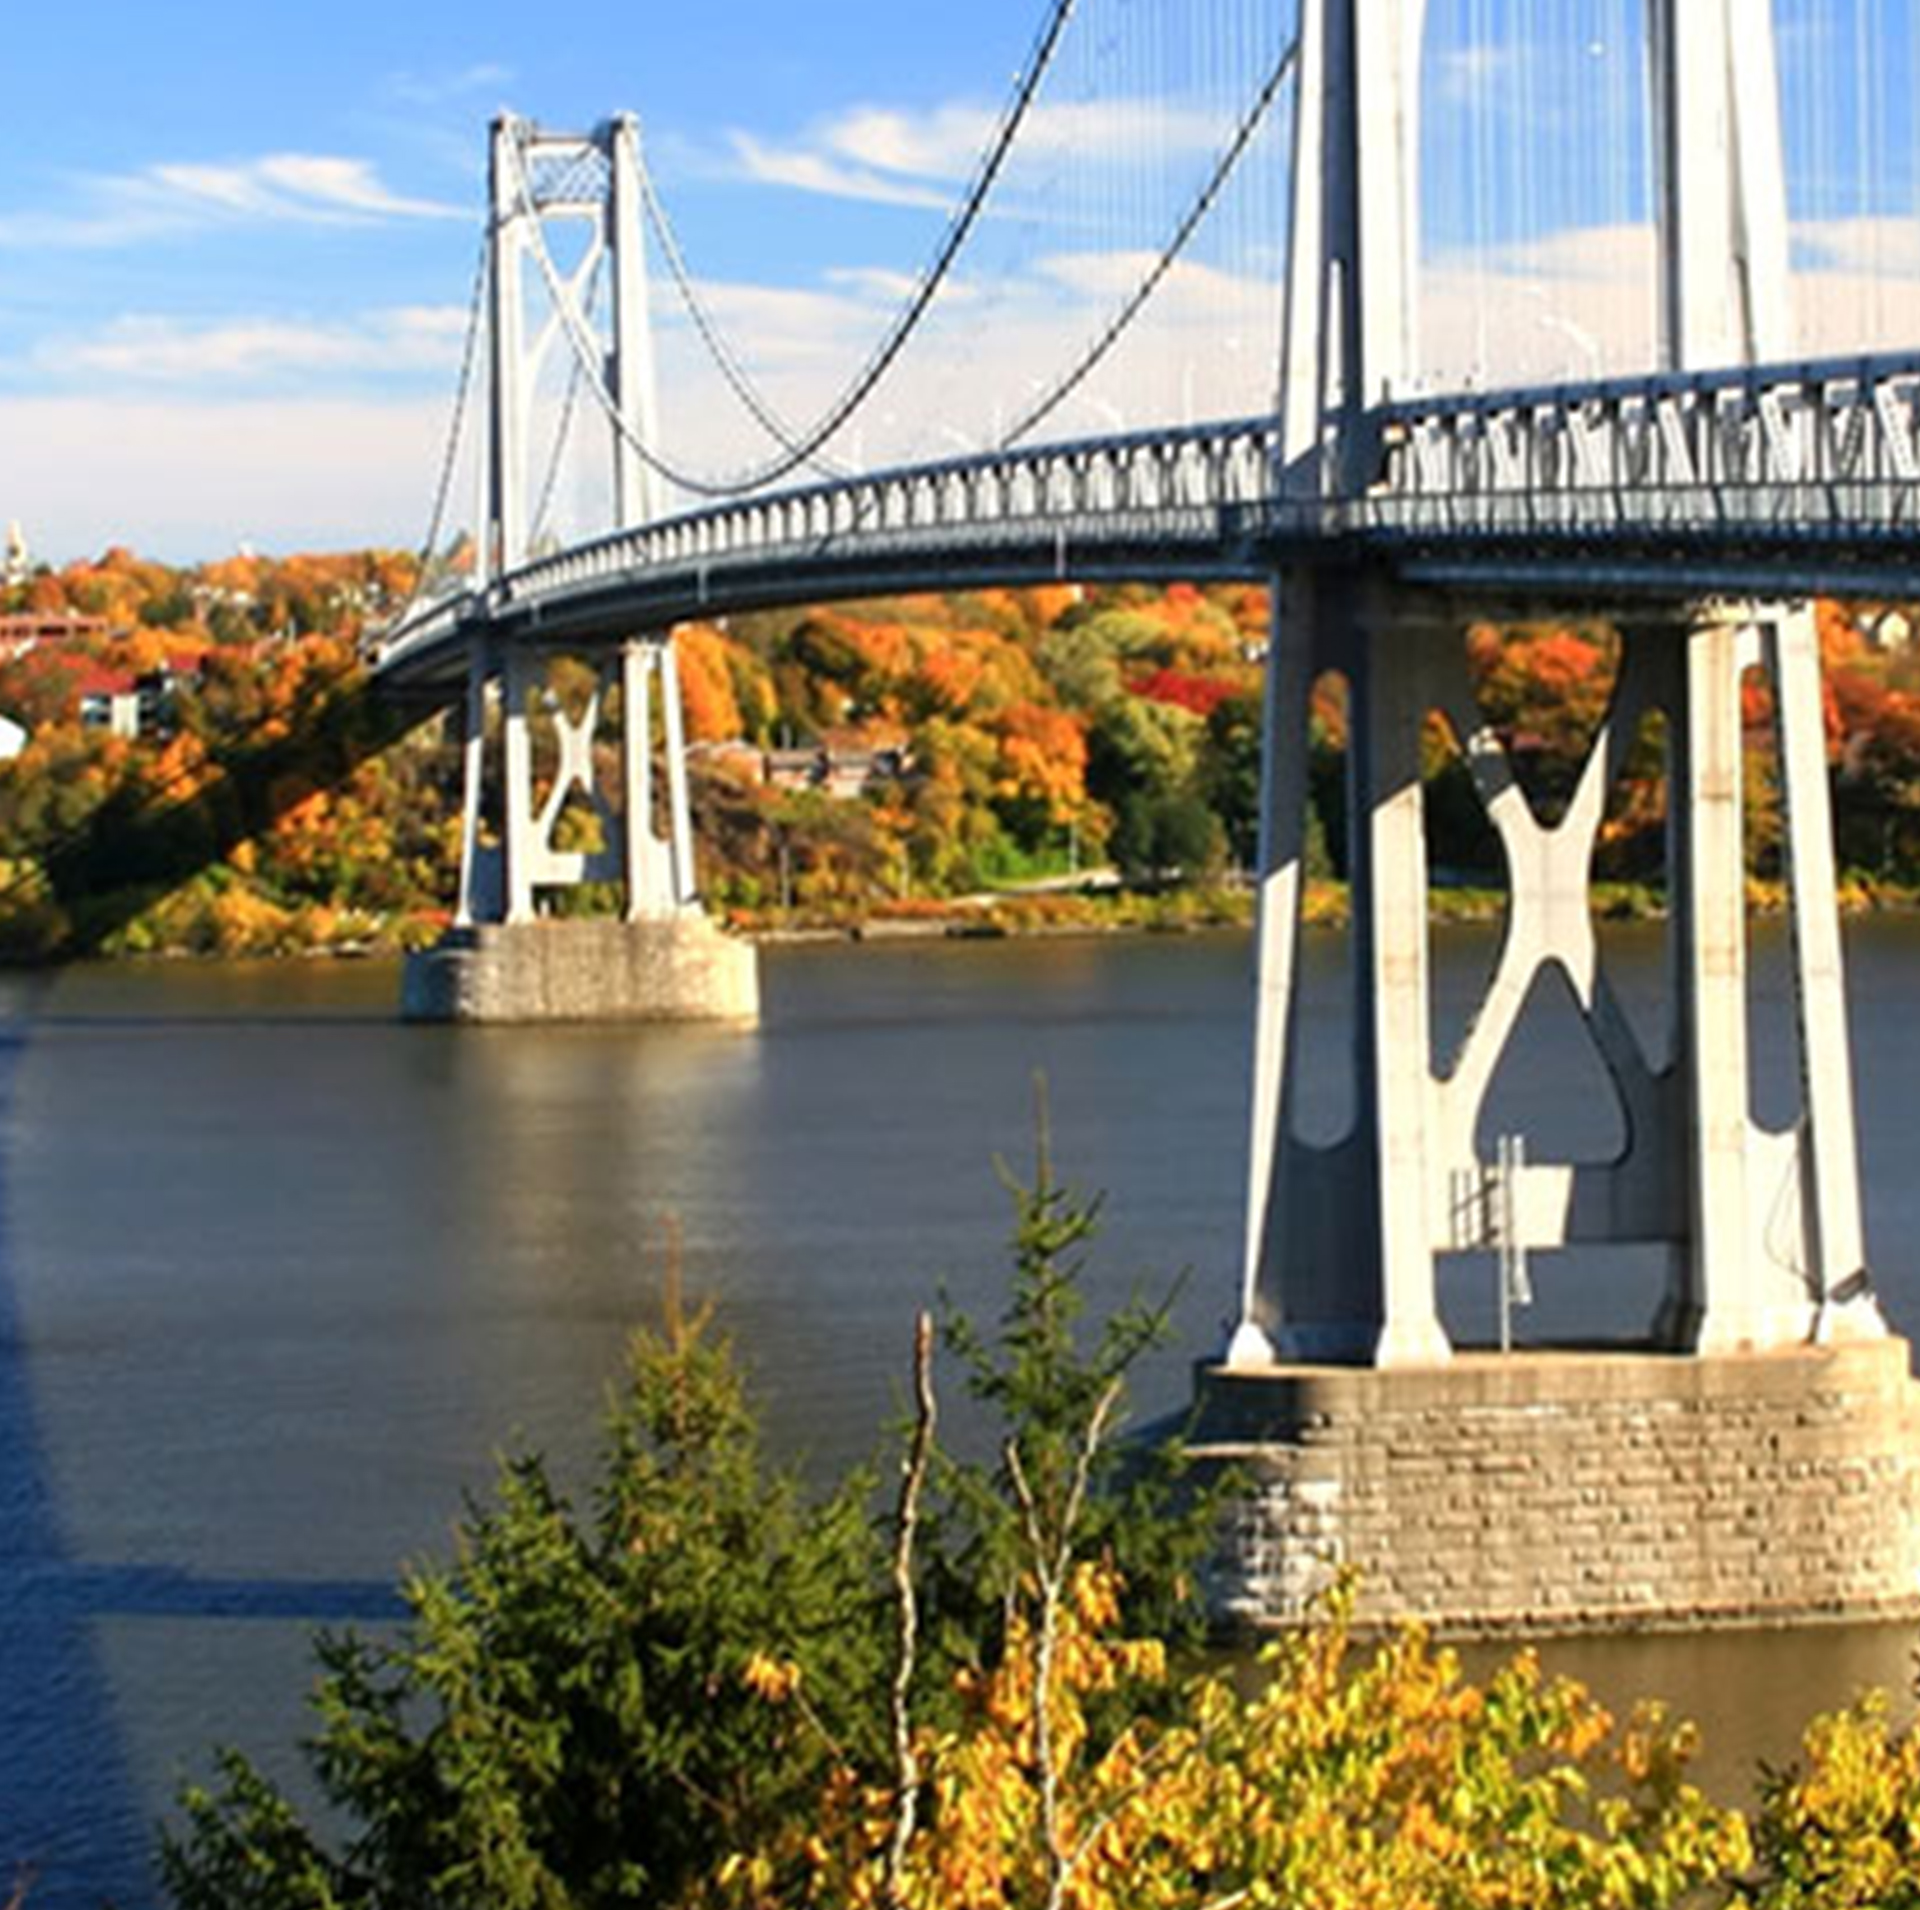 mid hudson organization bridge